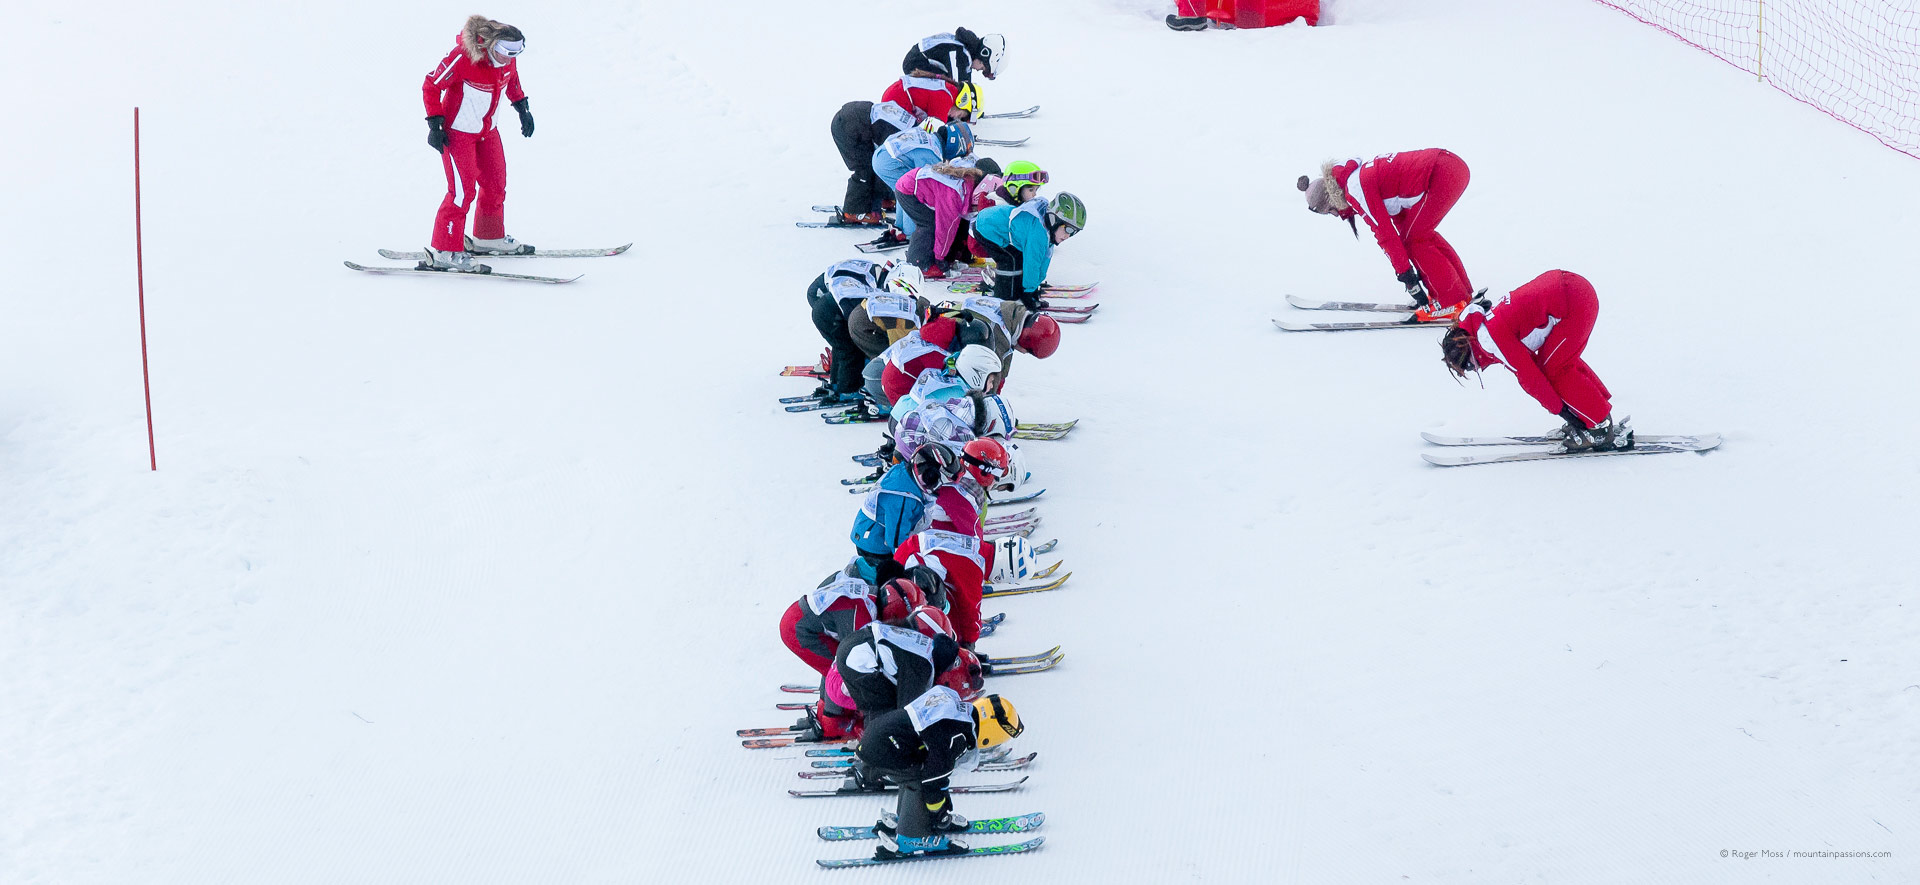 Bird's-eye view of ski instructors teaching children on the snow.